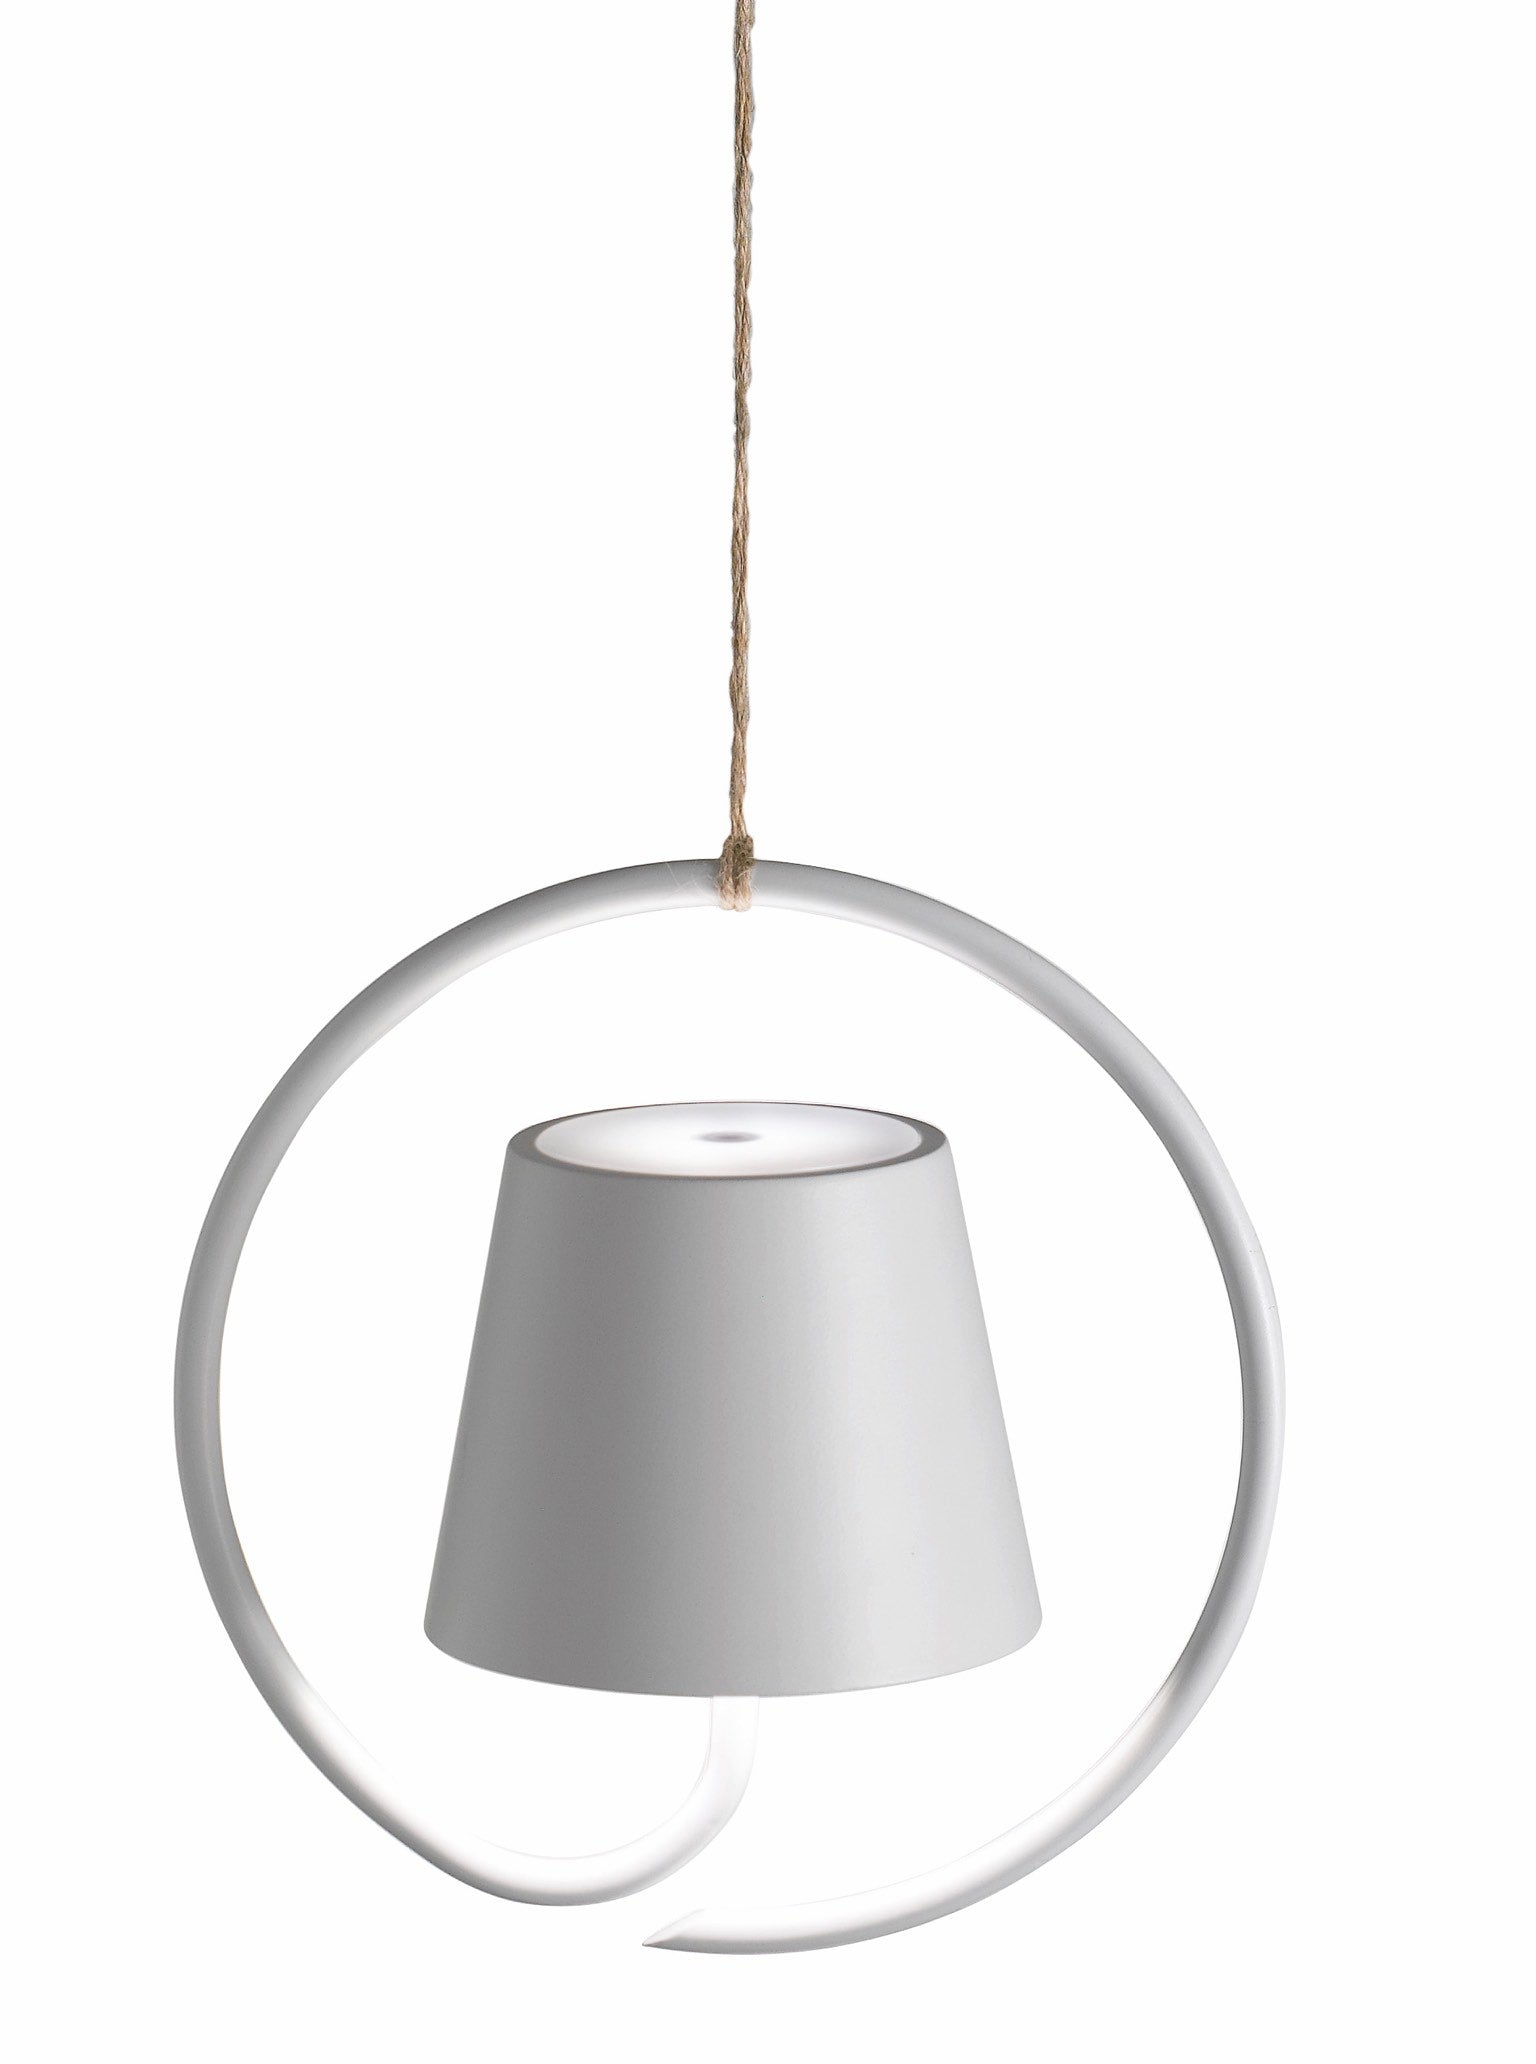 Poldina Suspension Lamp